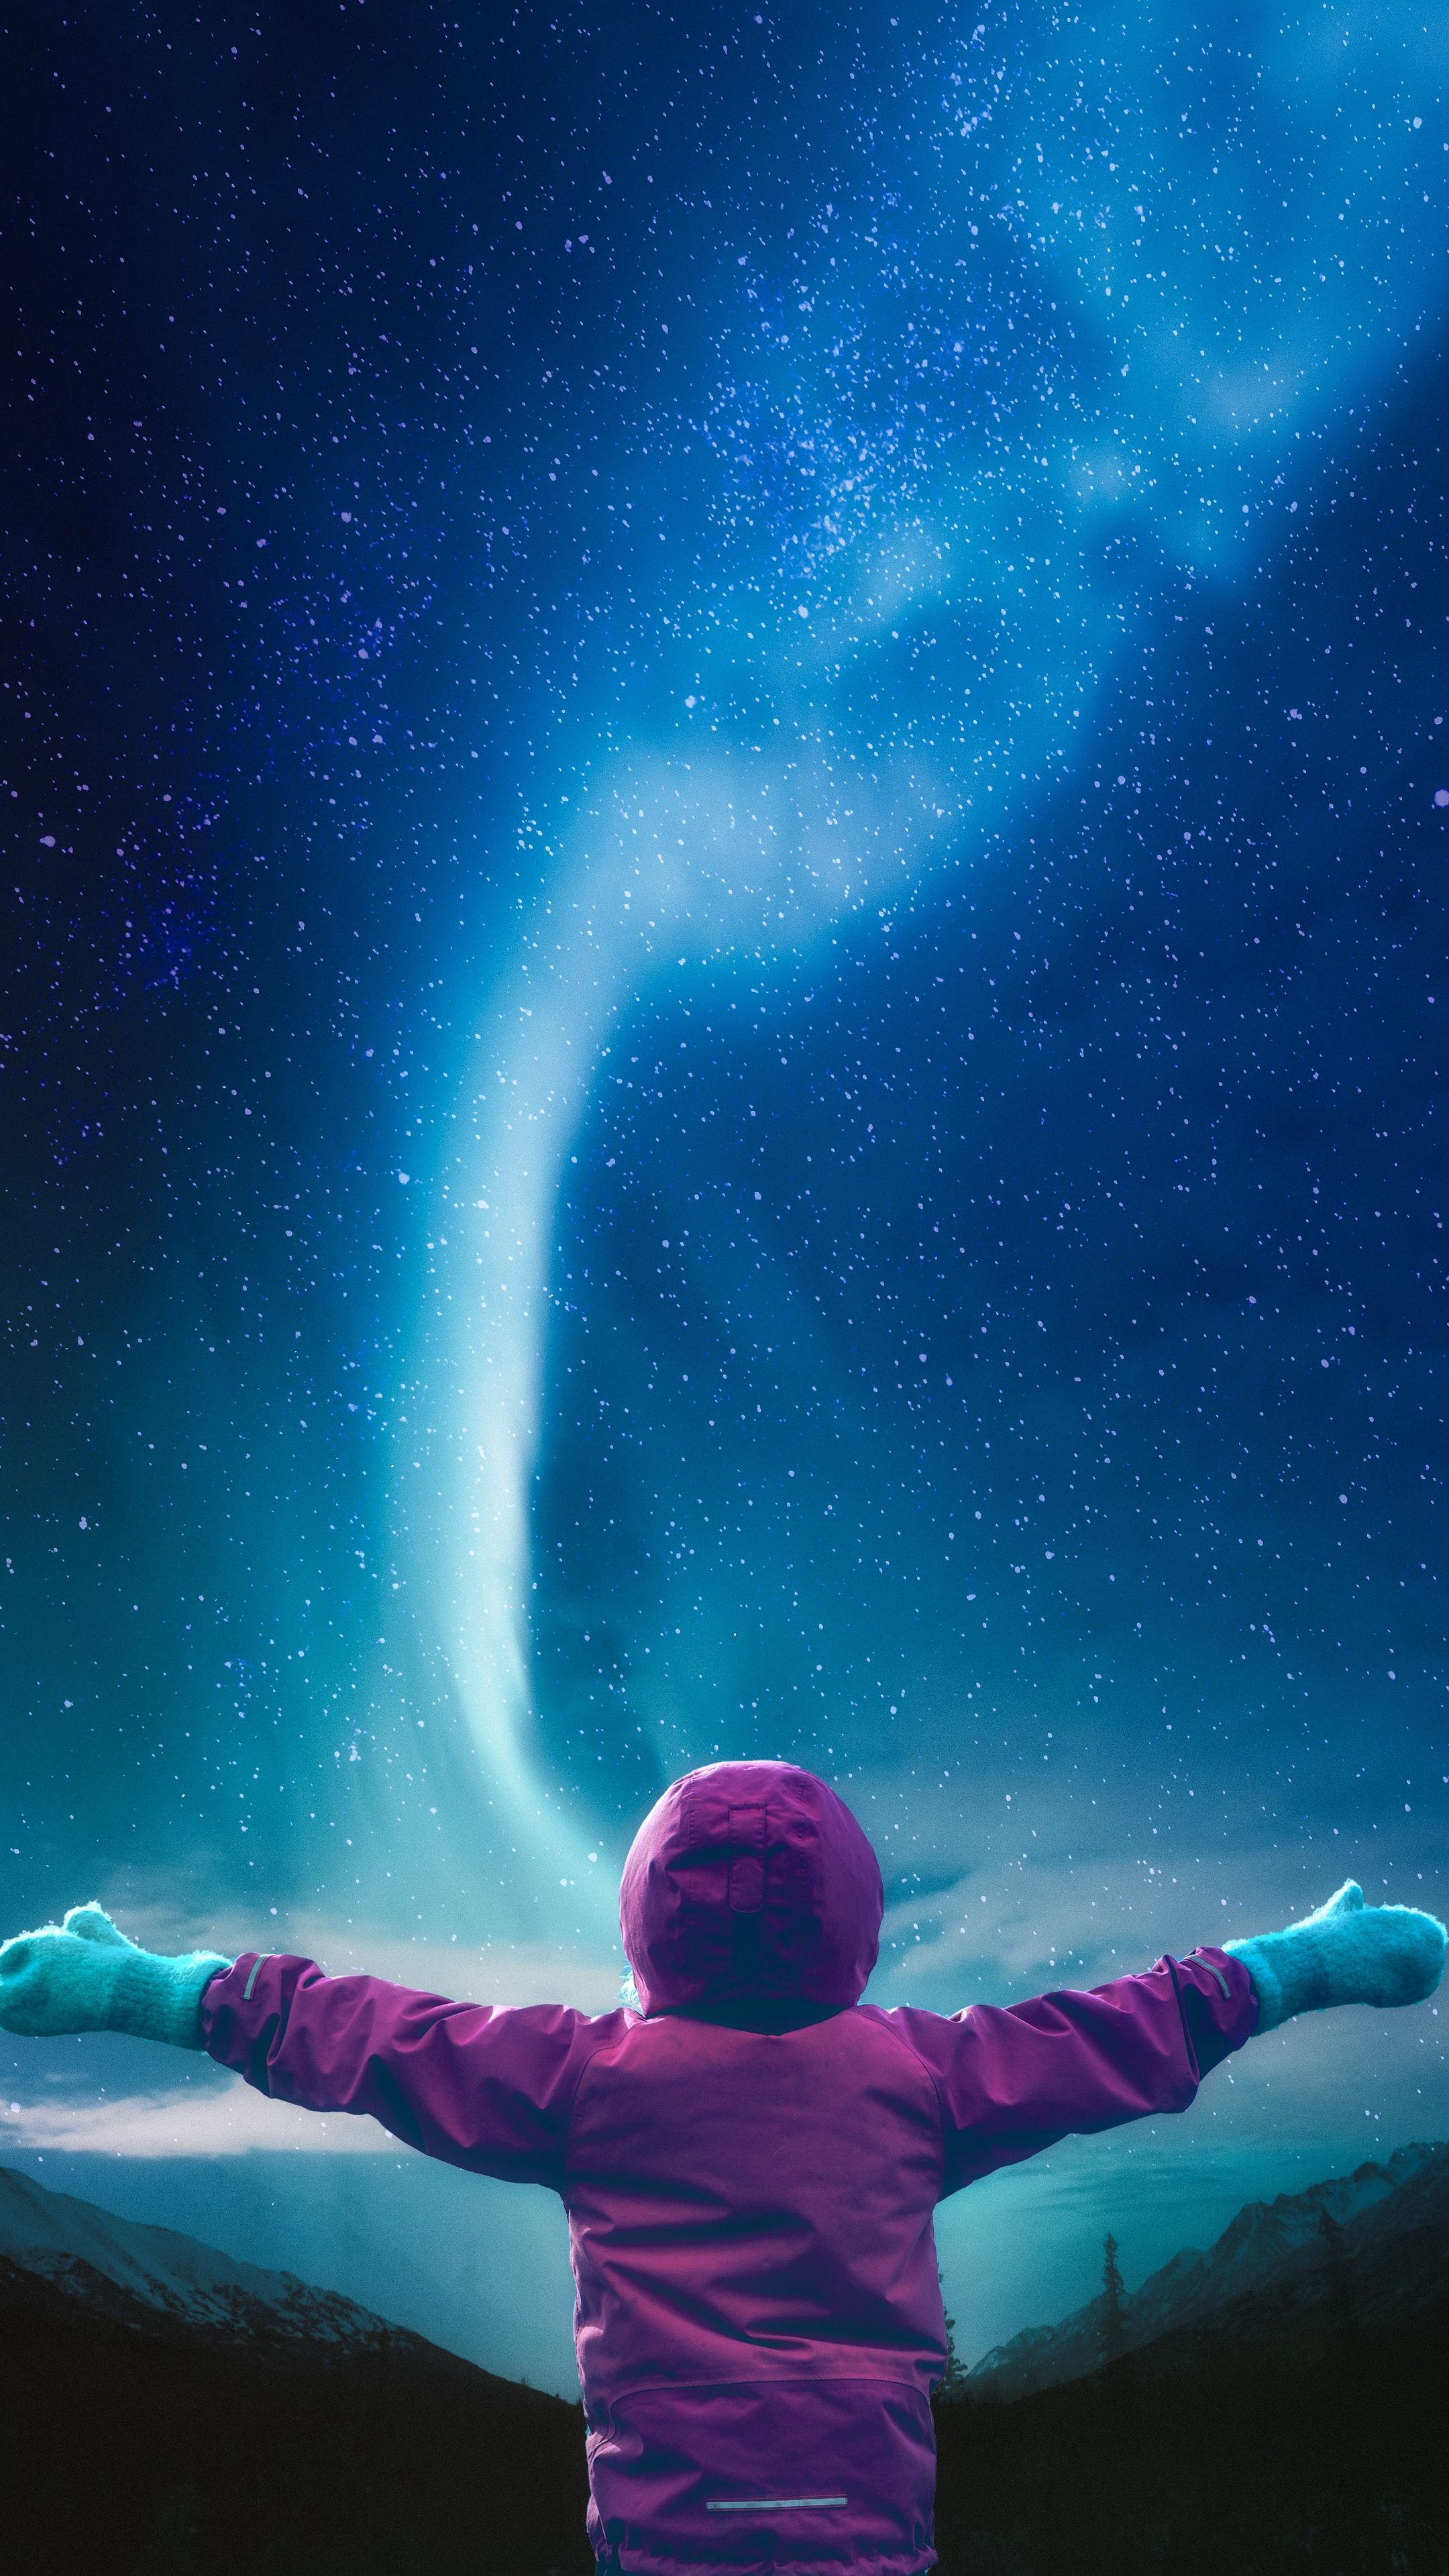 Nature starry sky, child, space android wallpapers 4k